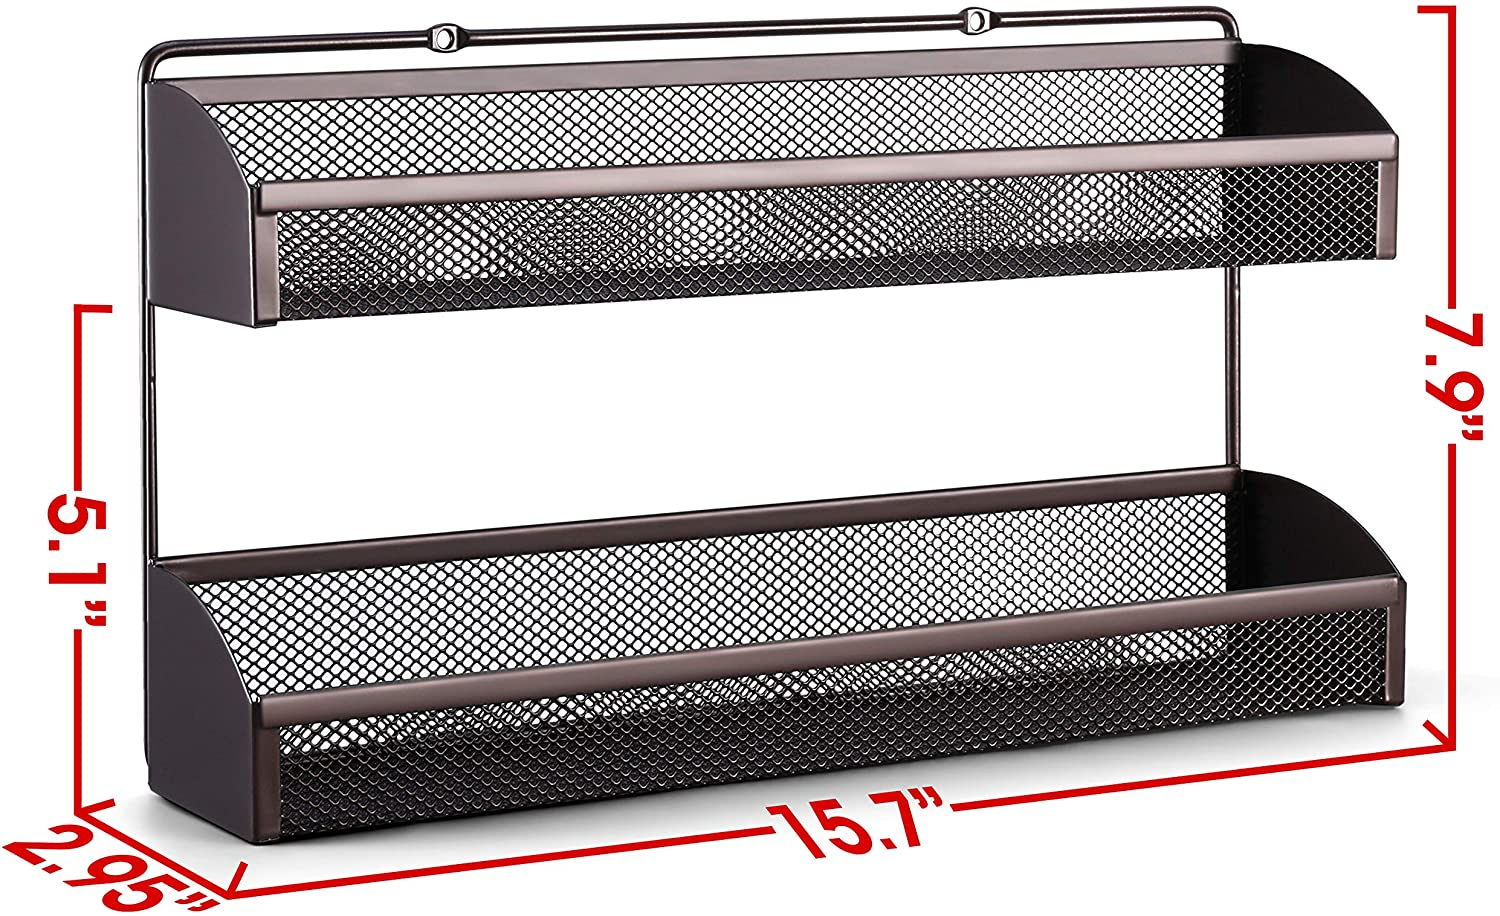 Wall Mounted Spice Shelf Storage Holder for Kitchen Cabinet Pantry Door Simple Trending 2 Tier Spice Rack Organizer Bronze 2 Pack